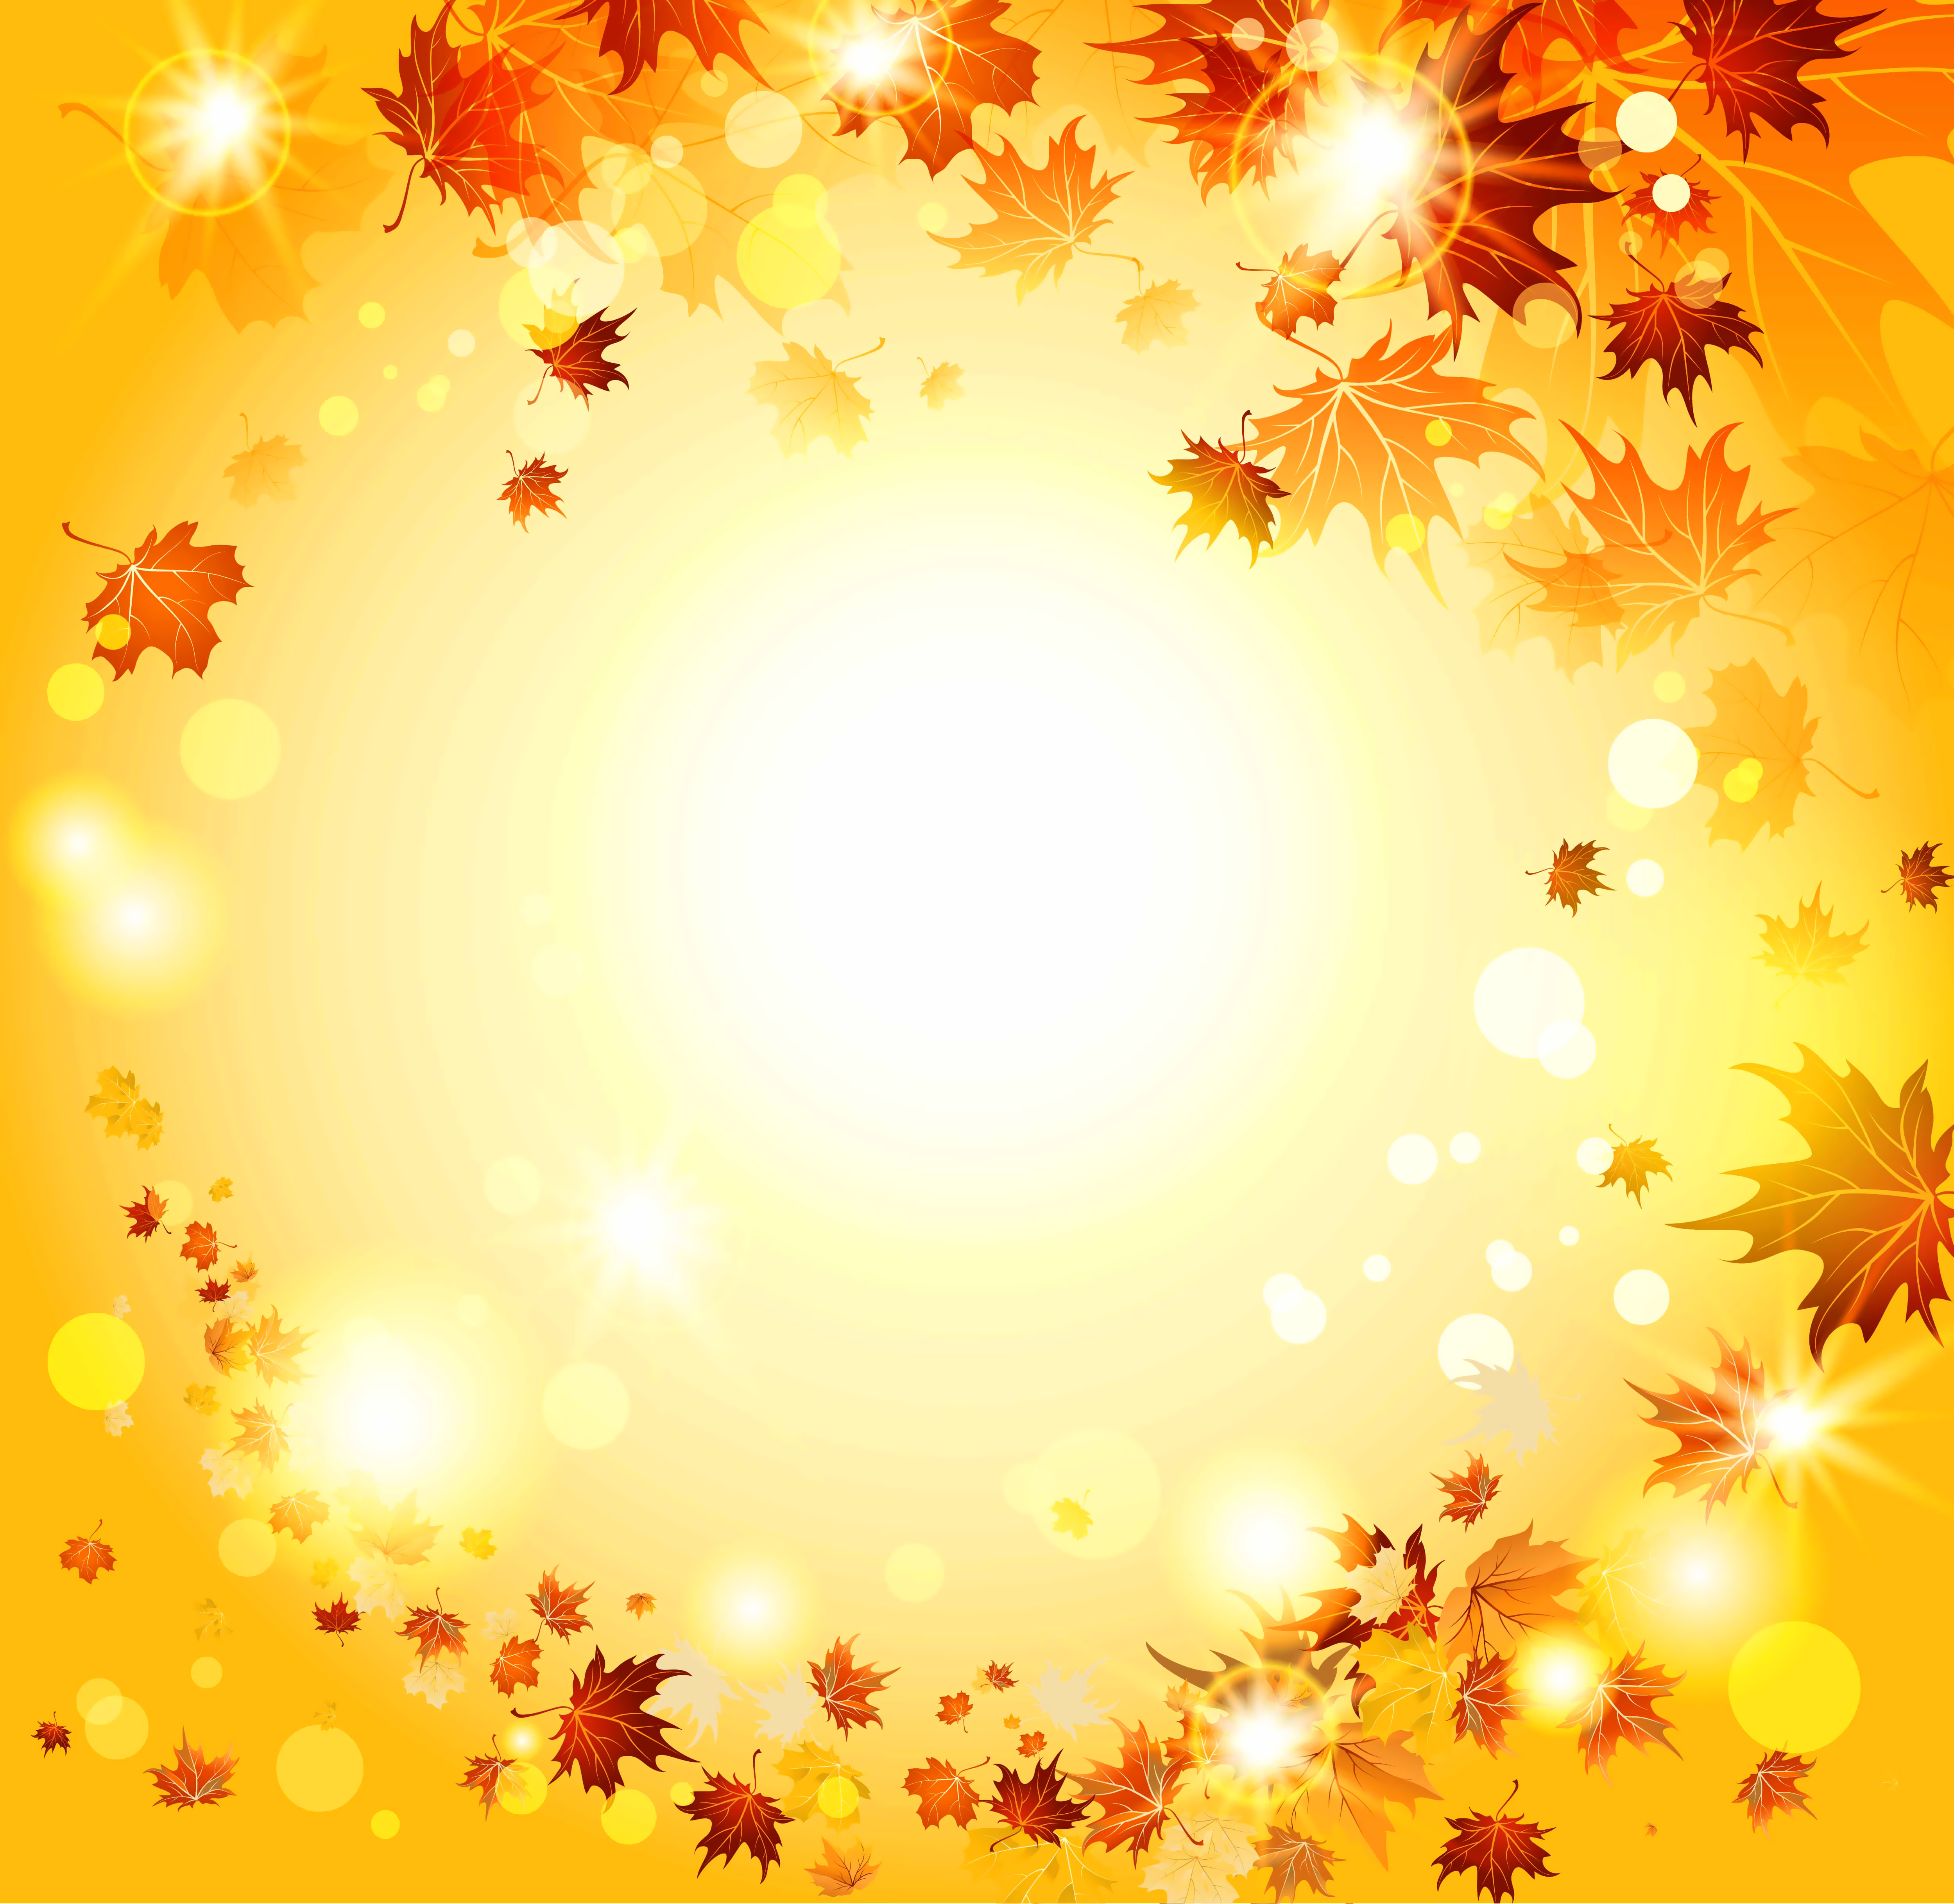 Fall Pics Wallpaper: Fall Background Images